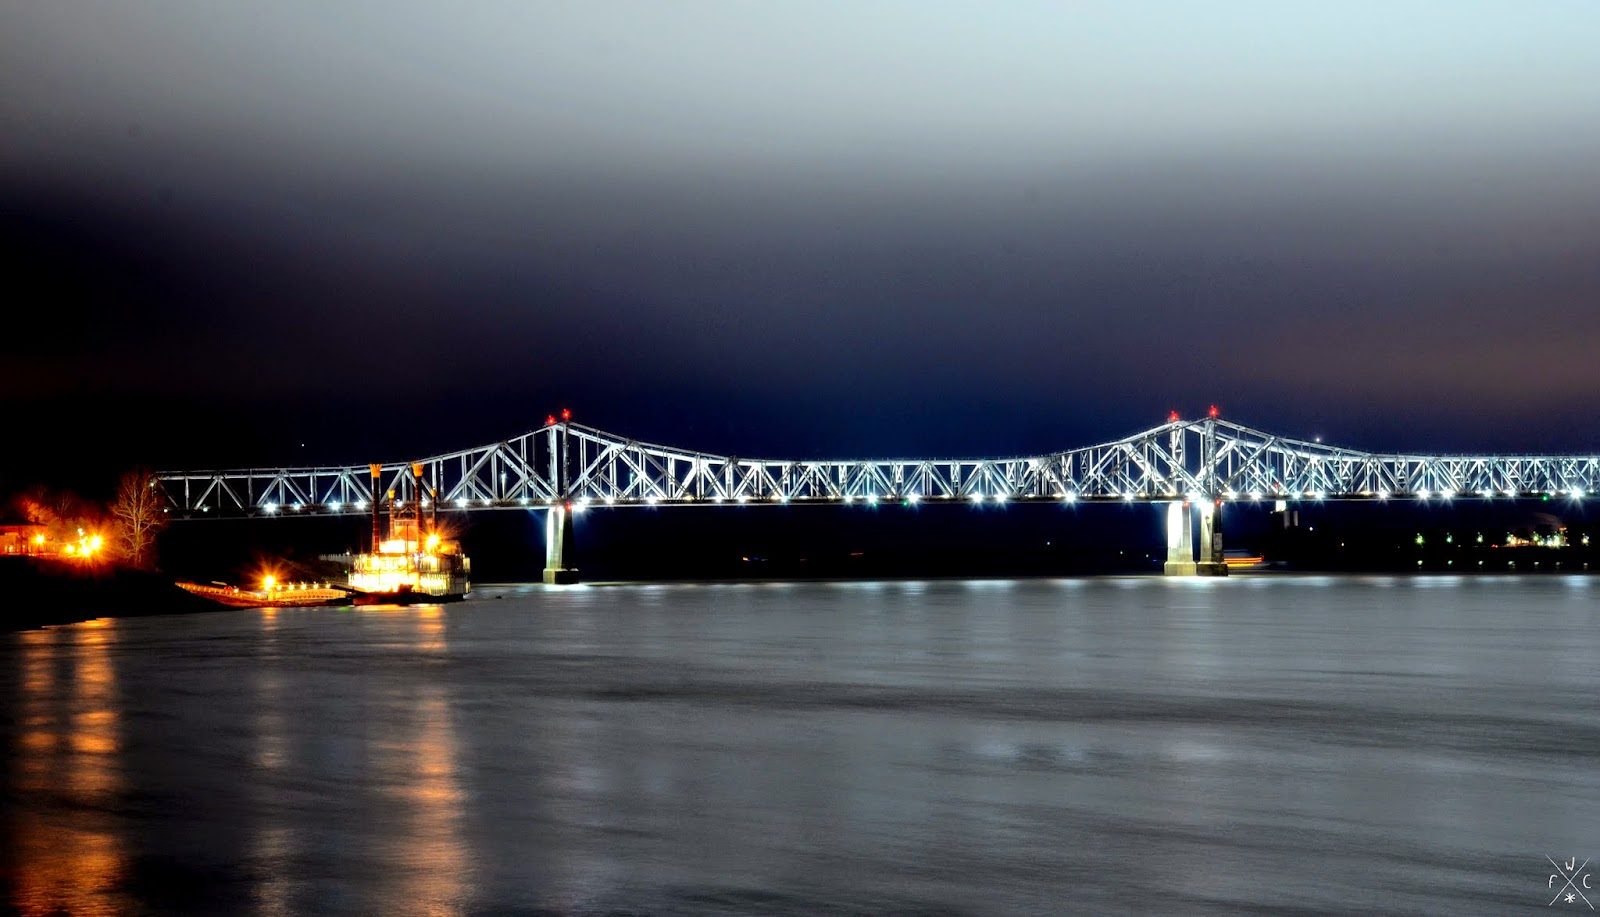 Natchez, Mississippi, USA